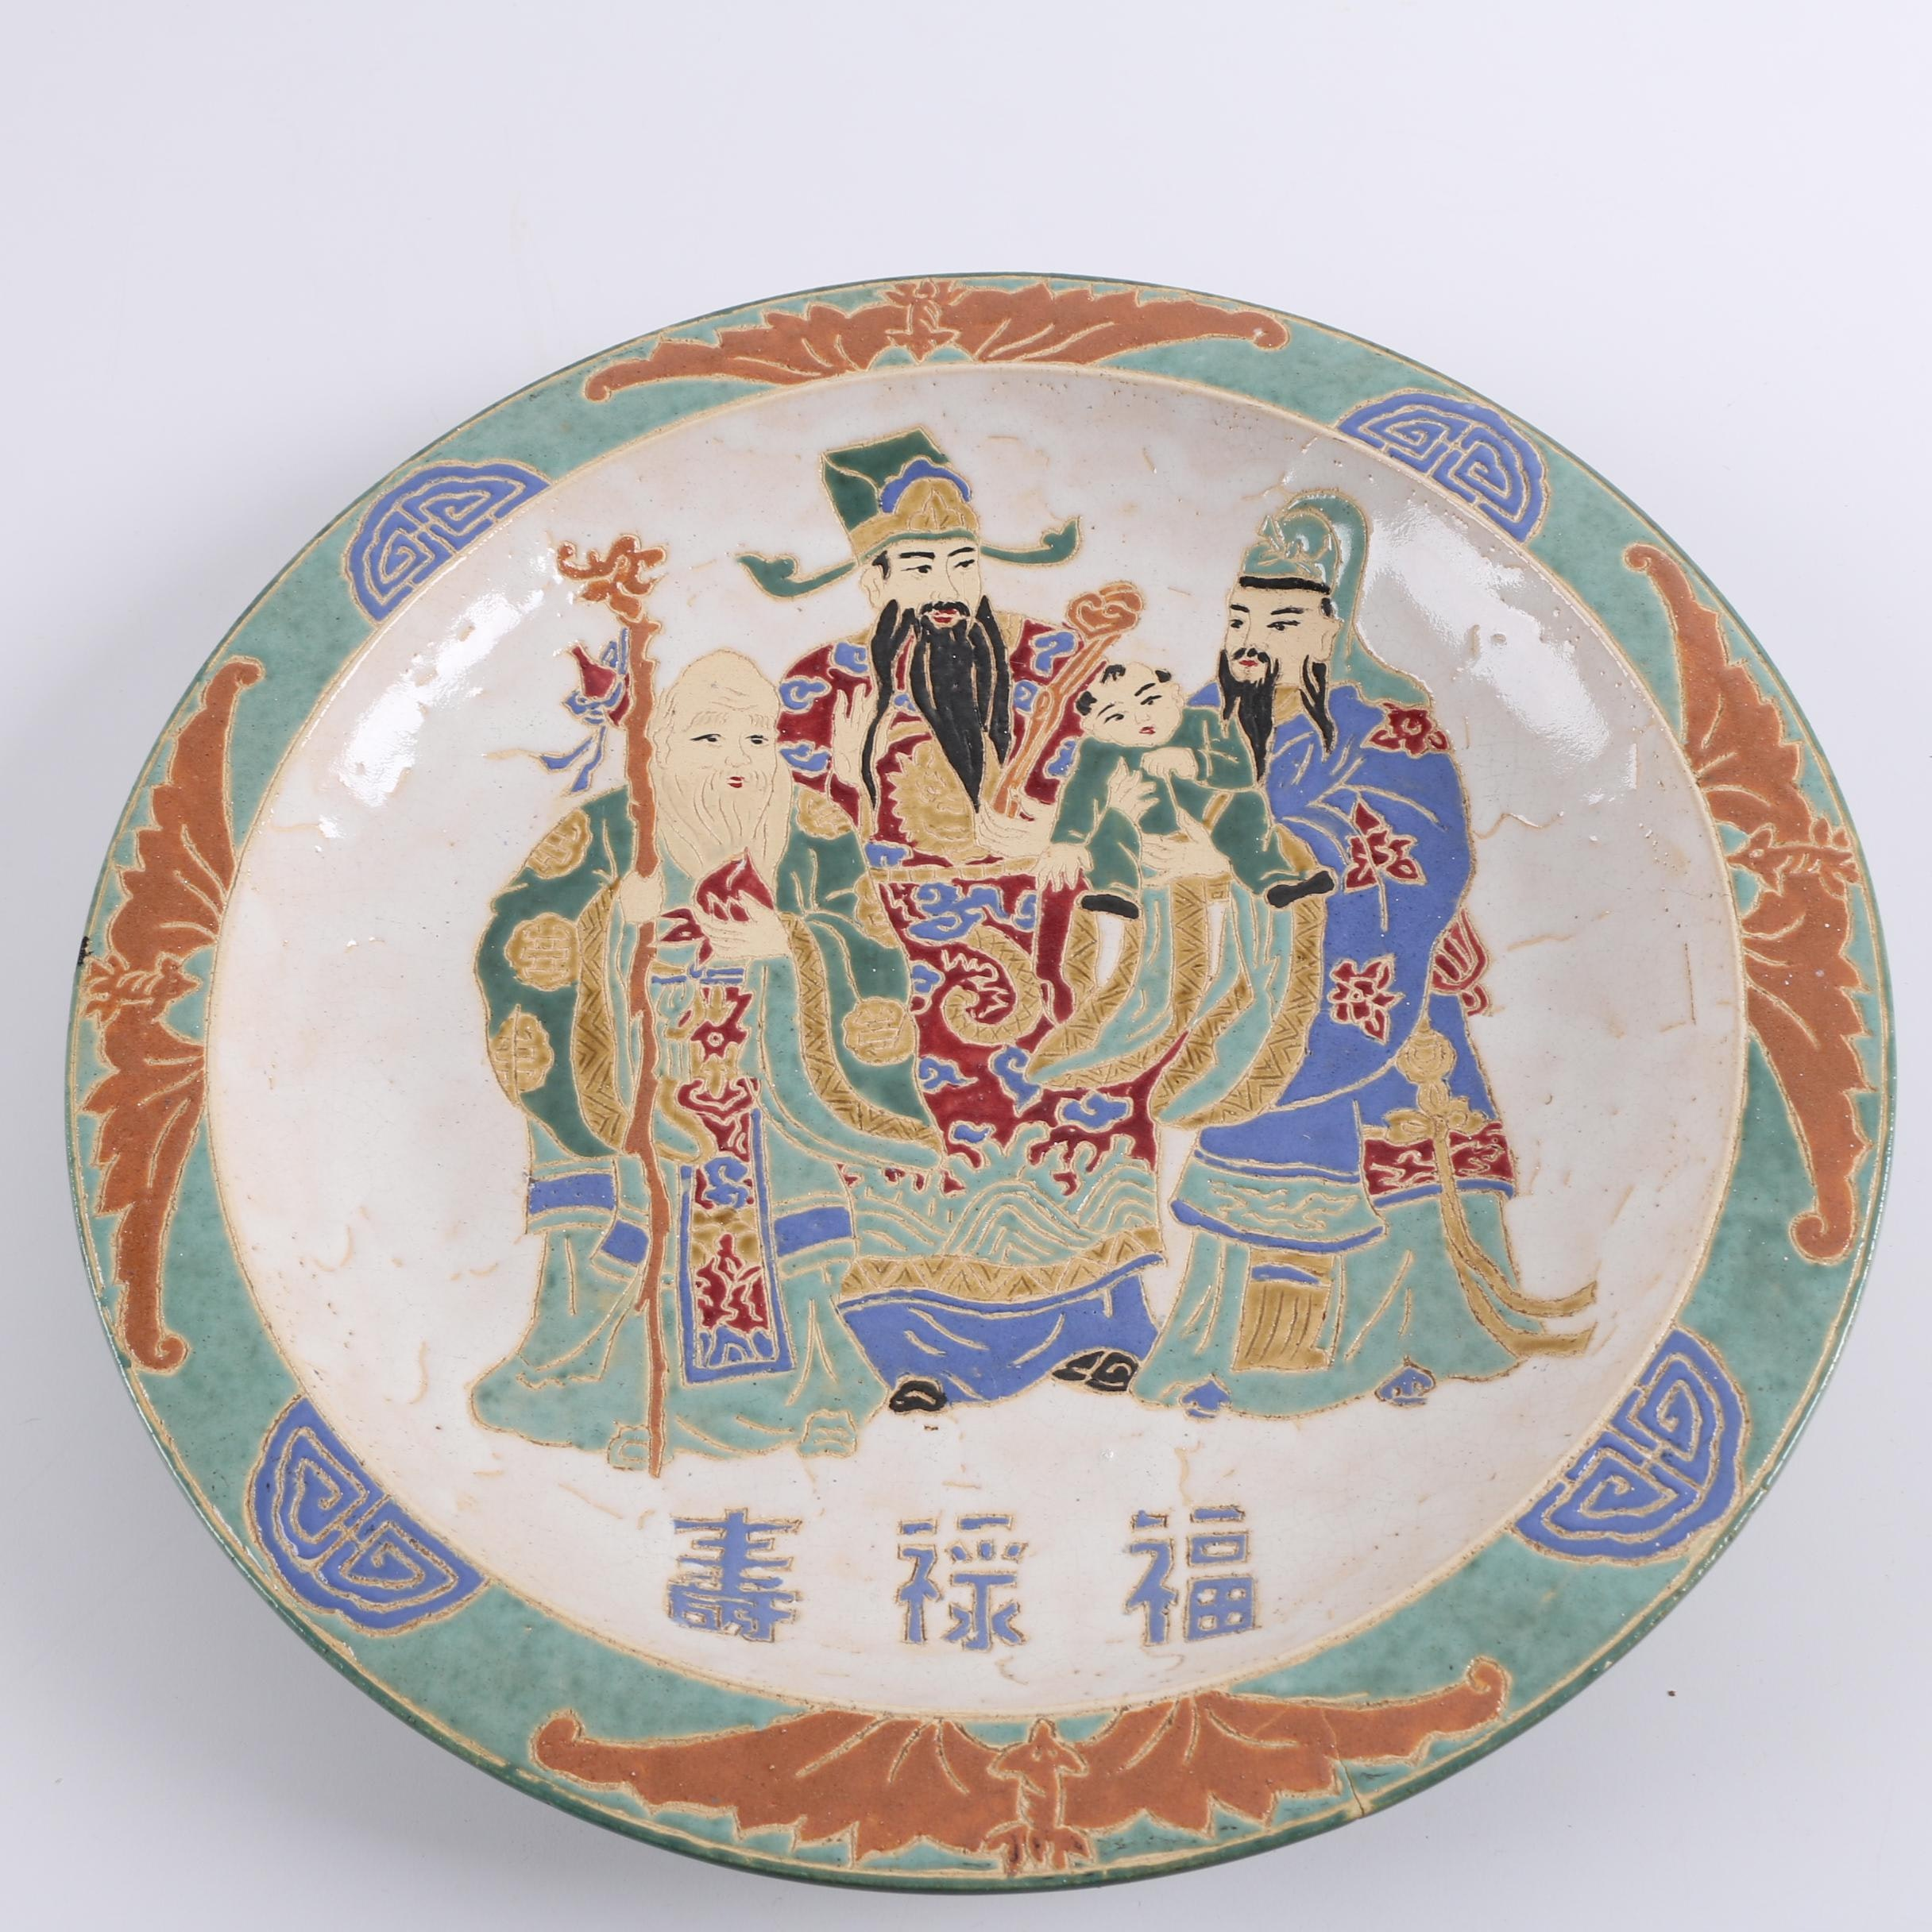 Chinese Plate with Sanxing Deities